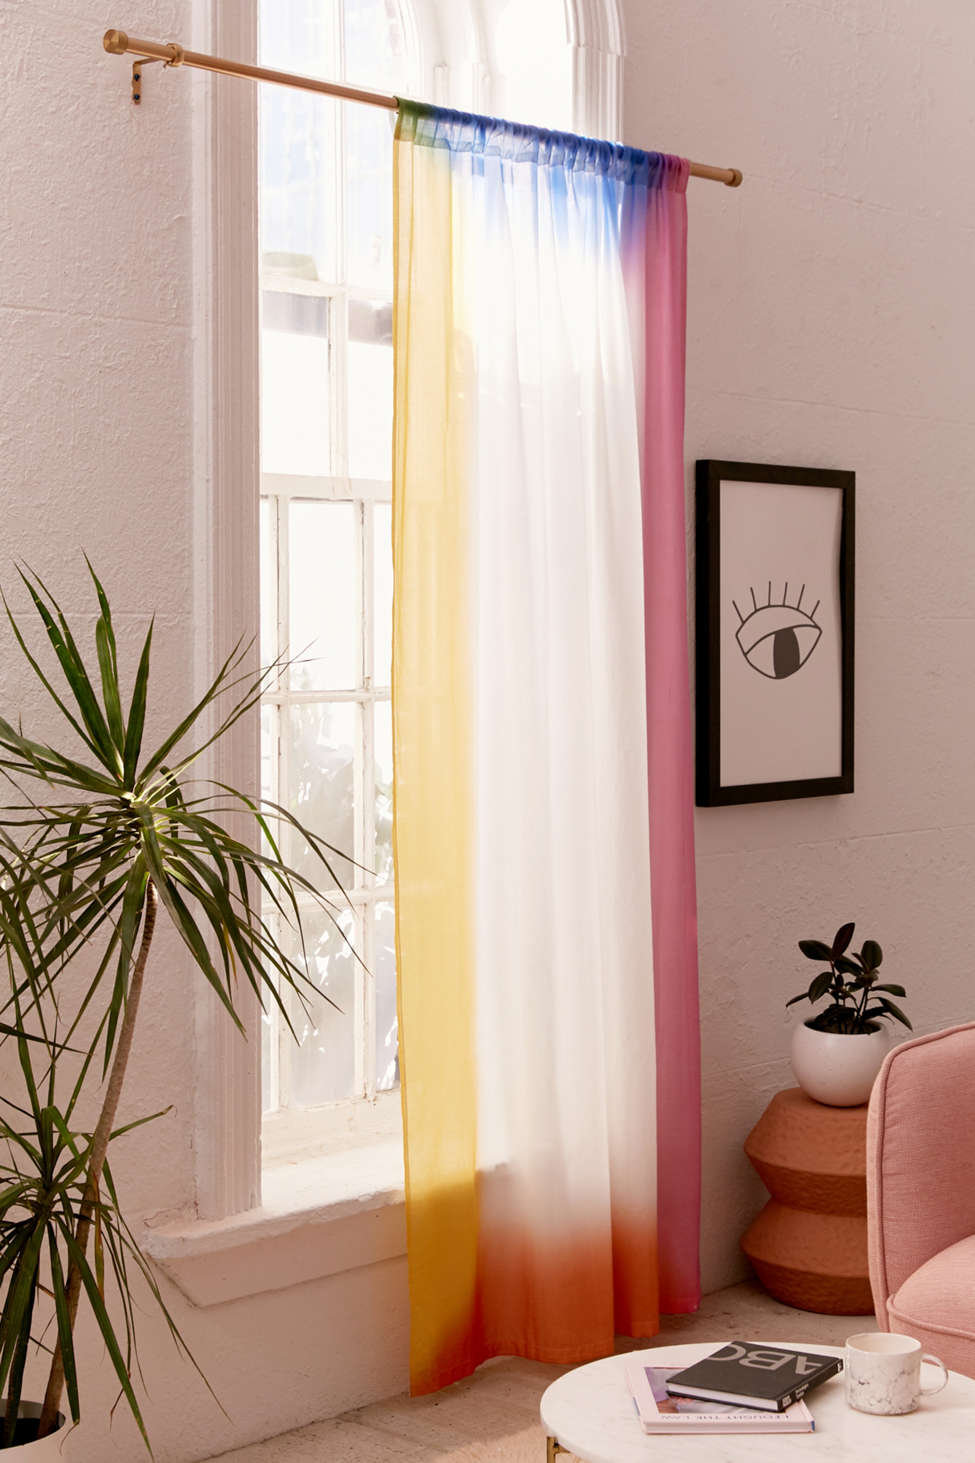 Slide View: 2: Rainbow Airbrush Border Window Curtain